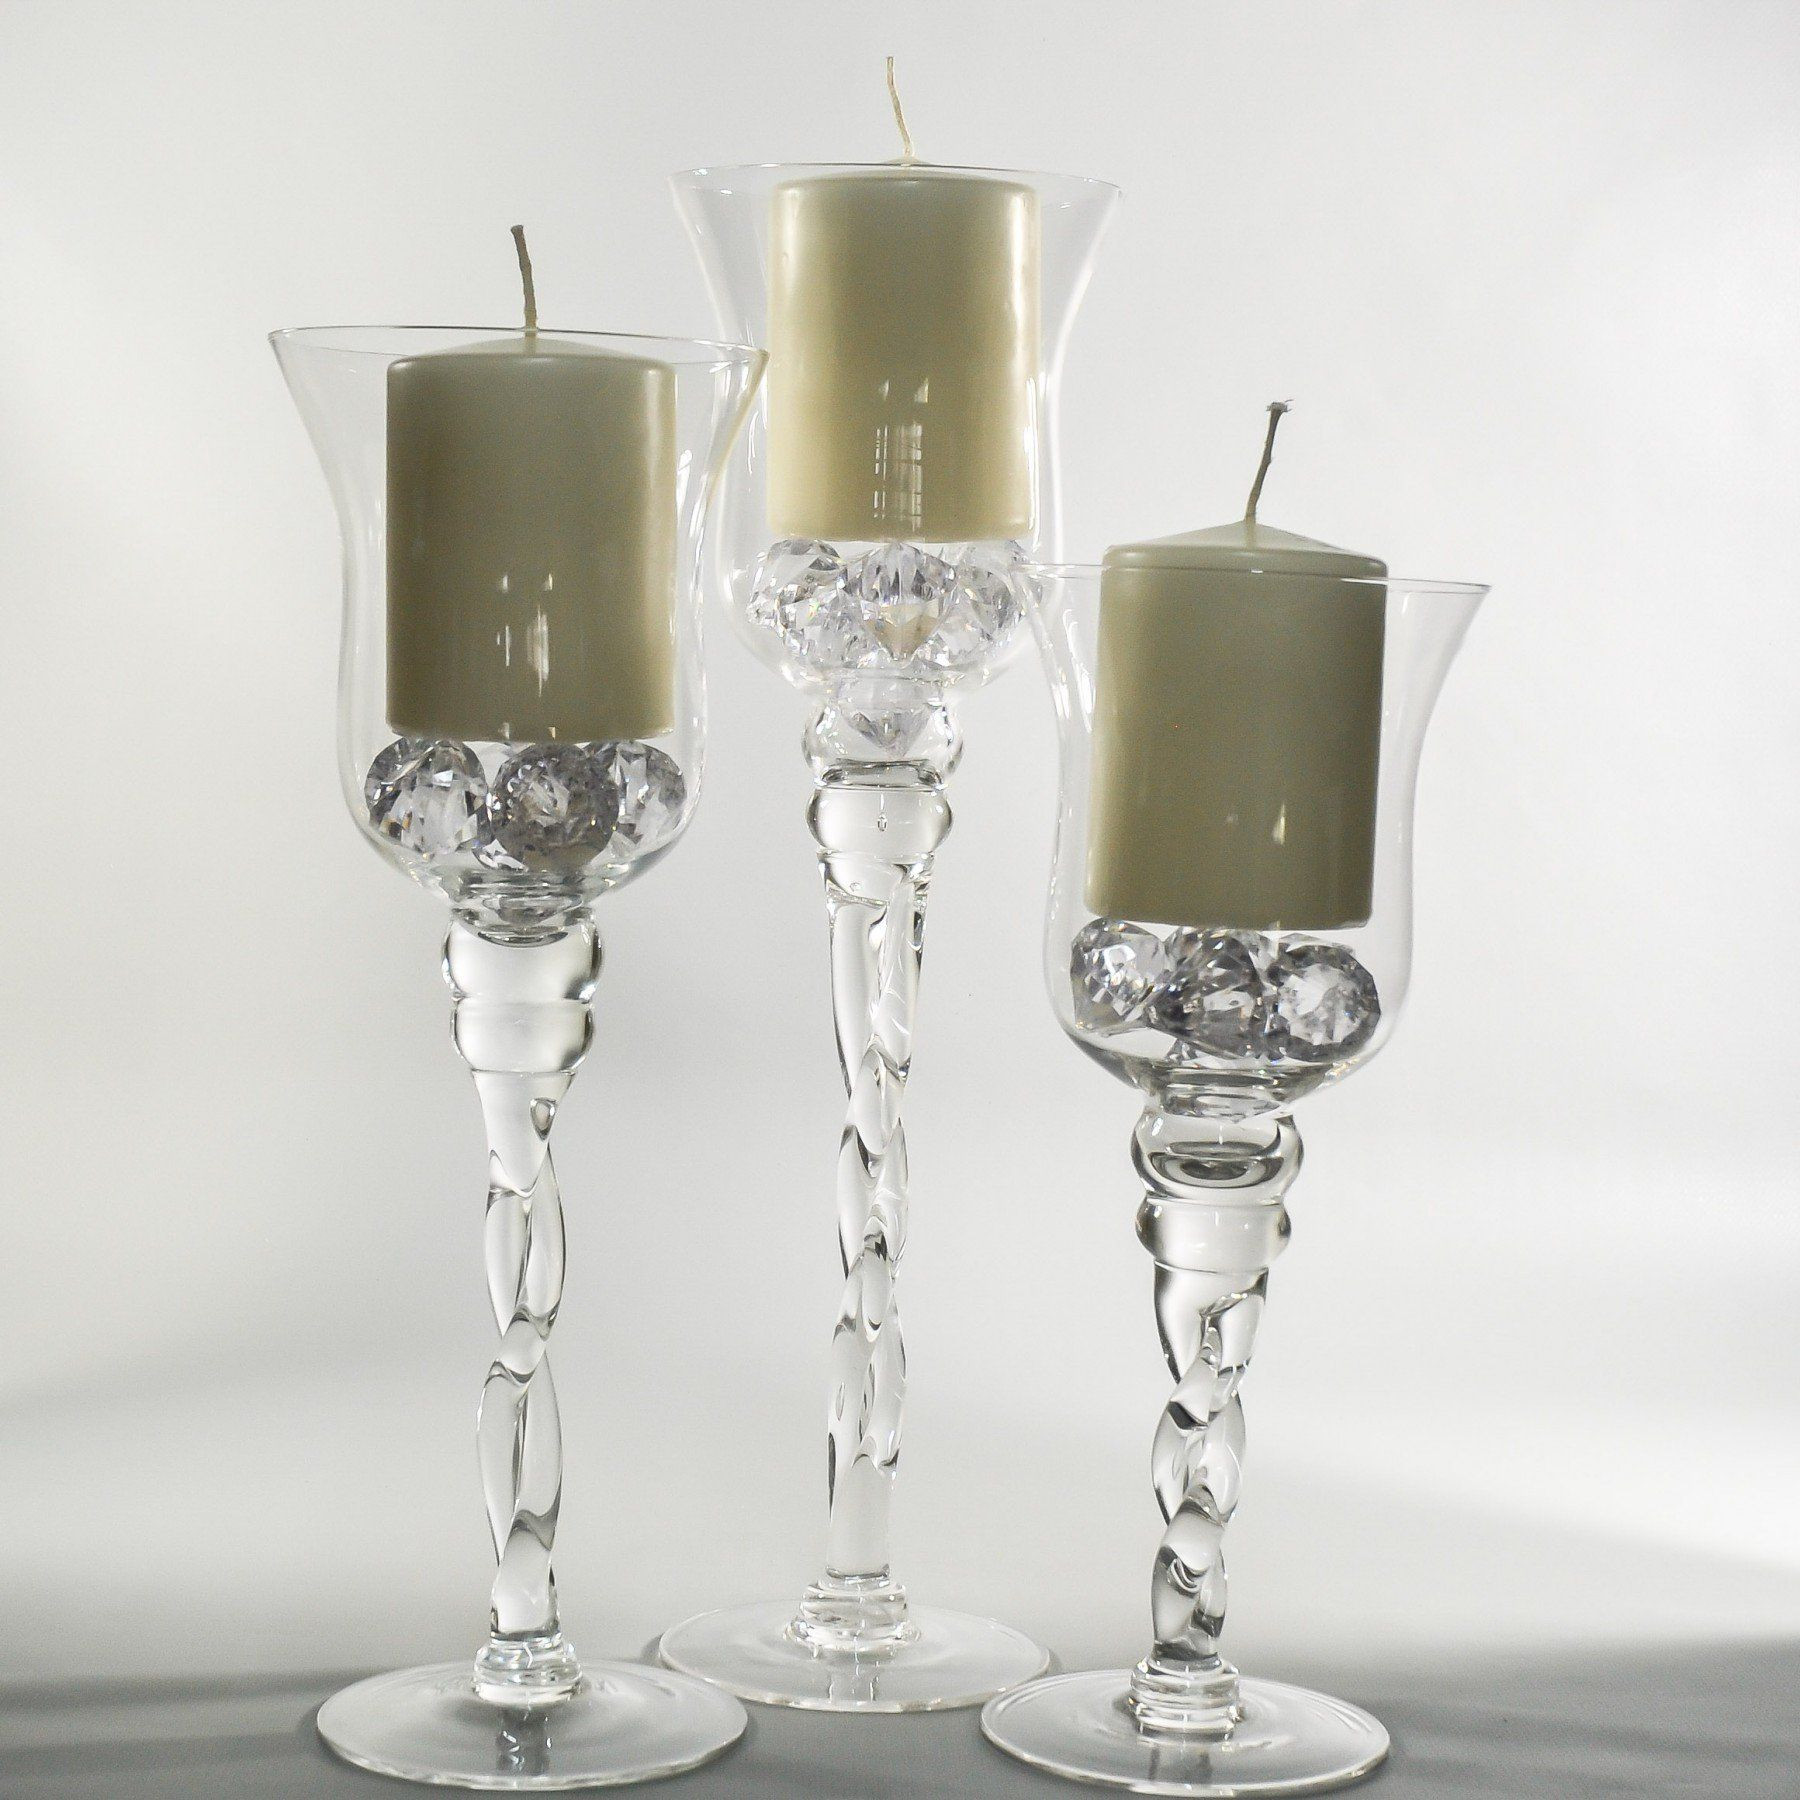 cheap vases in bulk uk of twisted clear glass vase candle holder 15 7 wholesale flowers and pertaining to twisted clear glass vase candle holder 15 7 wholesale flowers and supplies angs wedding decor pinterest clear glass vases and glass